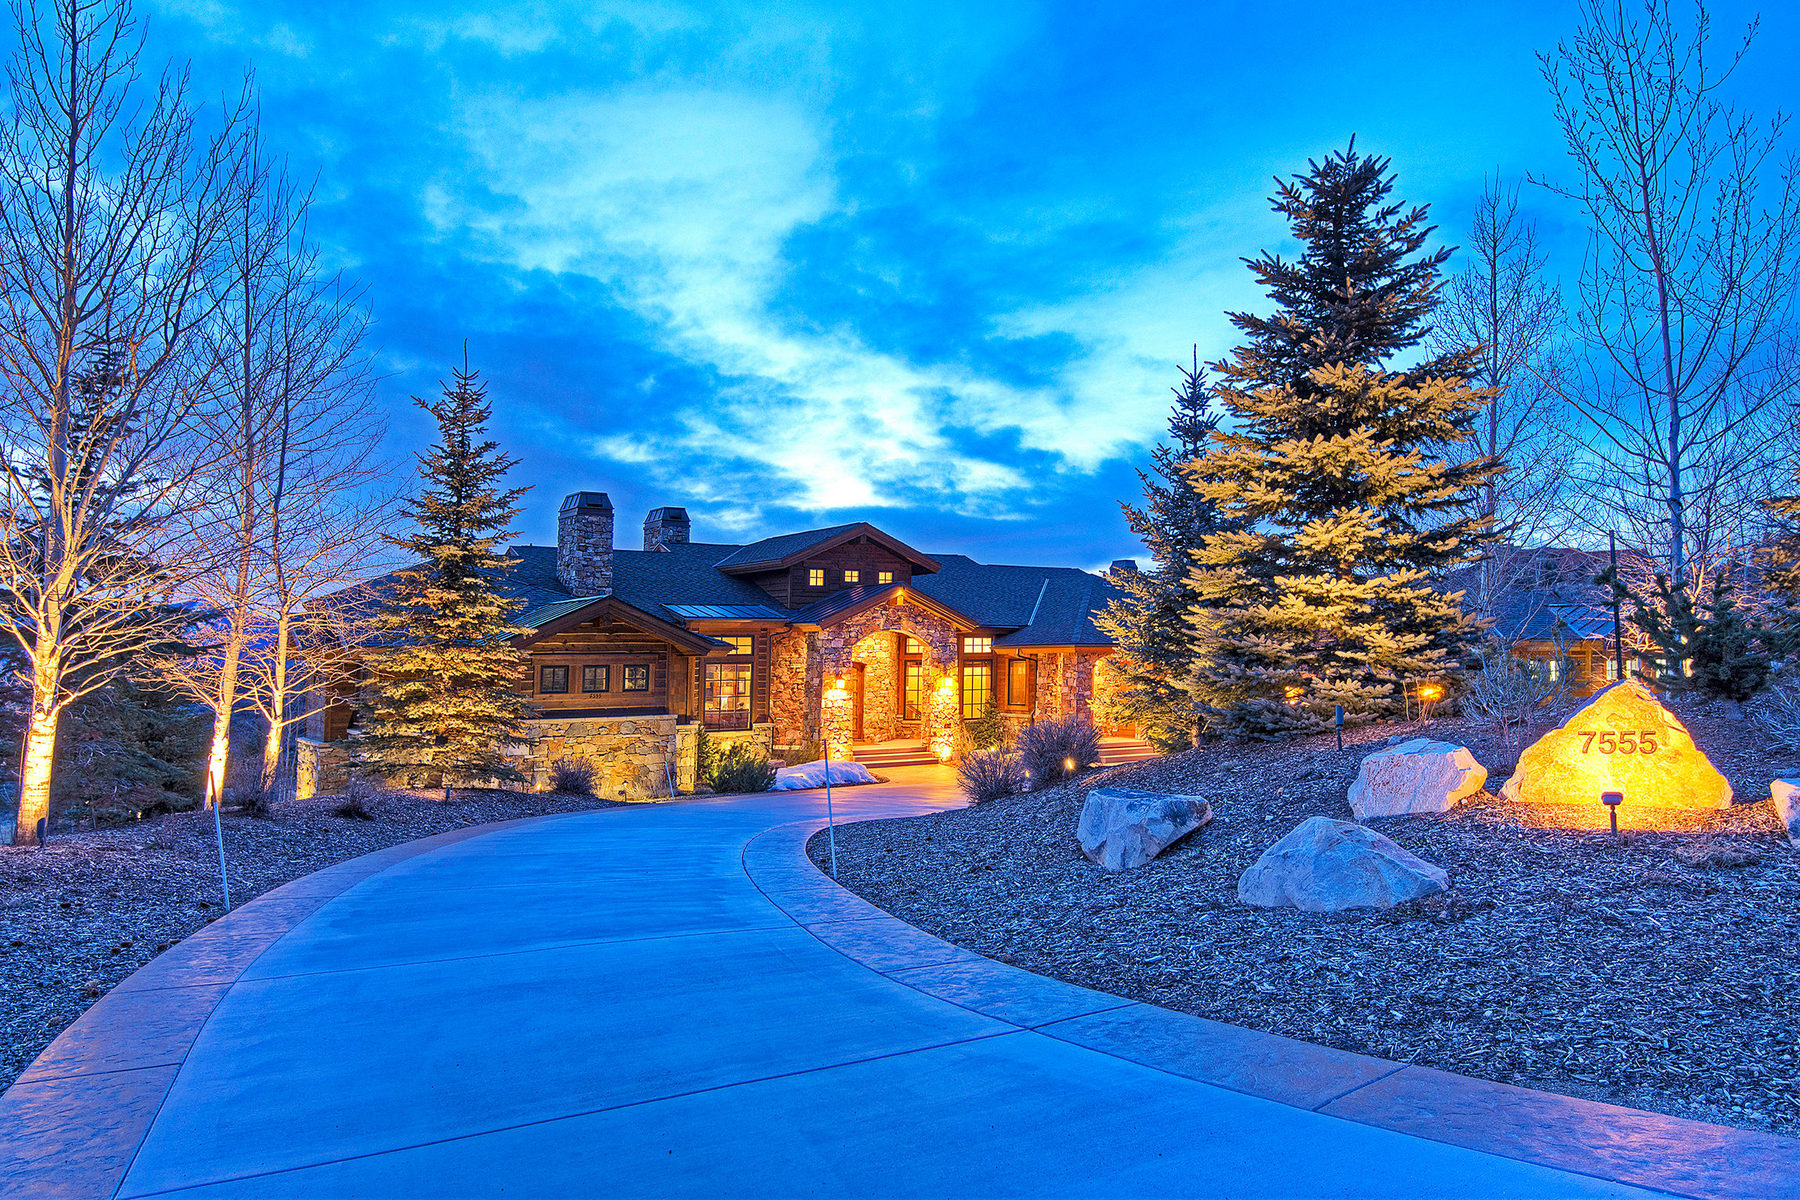 Villa per Vendita alle ore Stunning Promontory Mountain Home With Golf & Ski Resort Views 7555 N. Ranch Club Trail Lot 23 Park City, Utah 84098 Stati Uniti